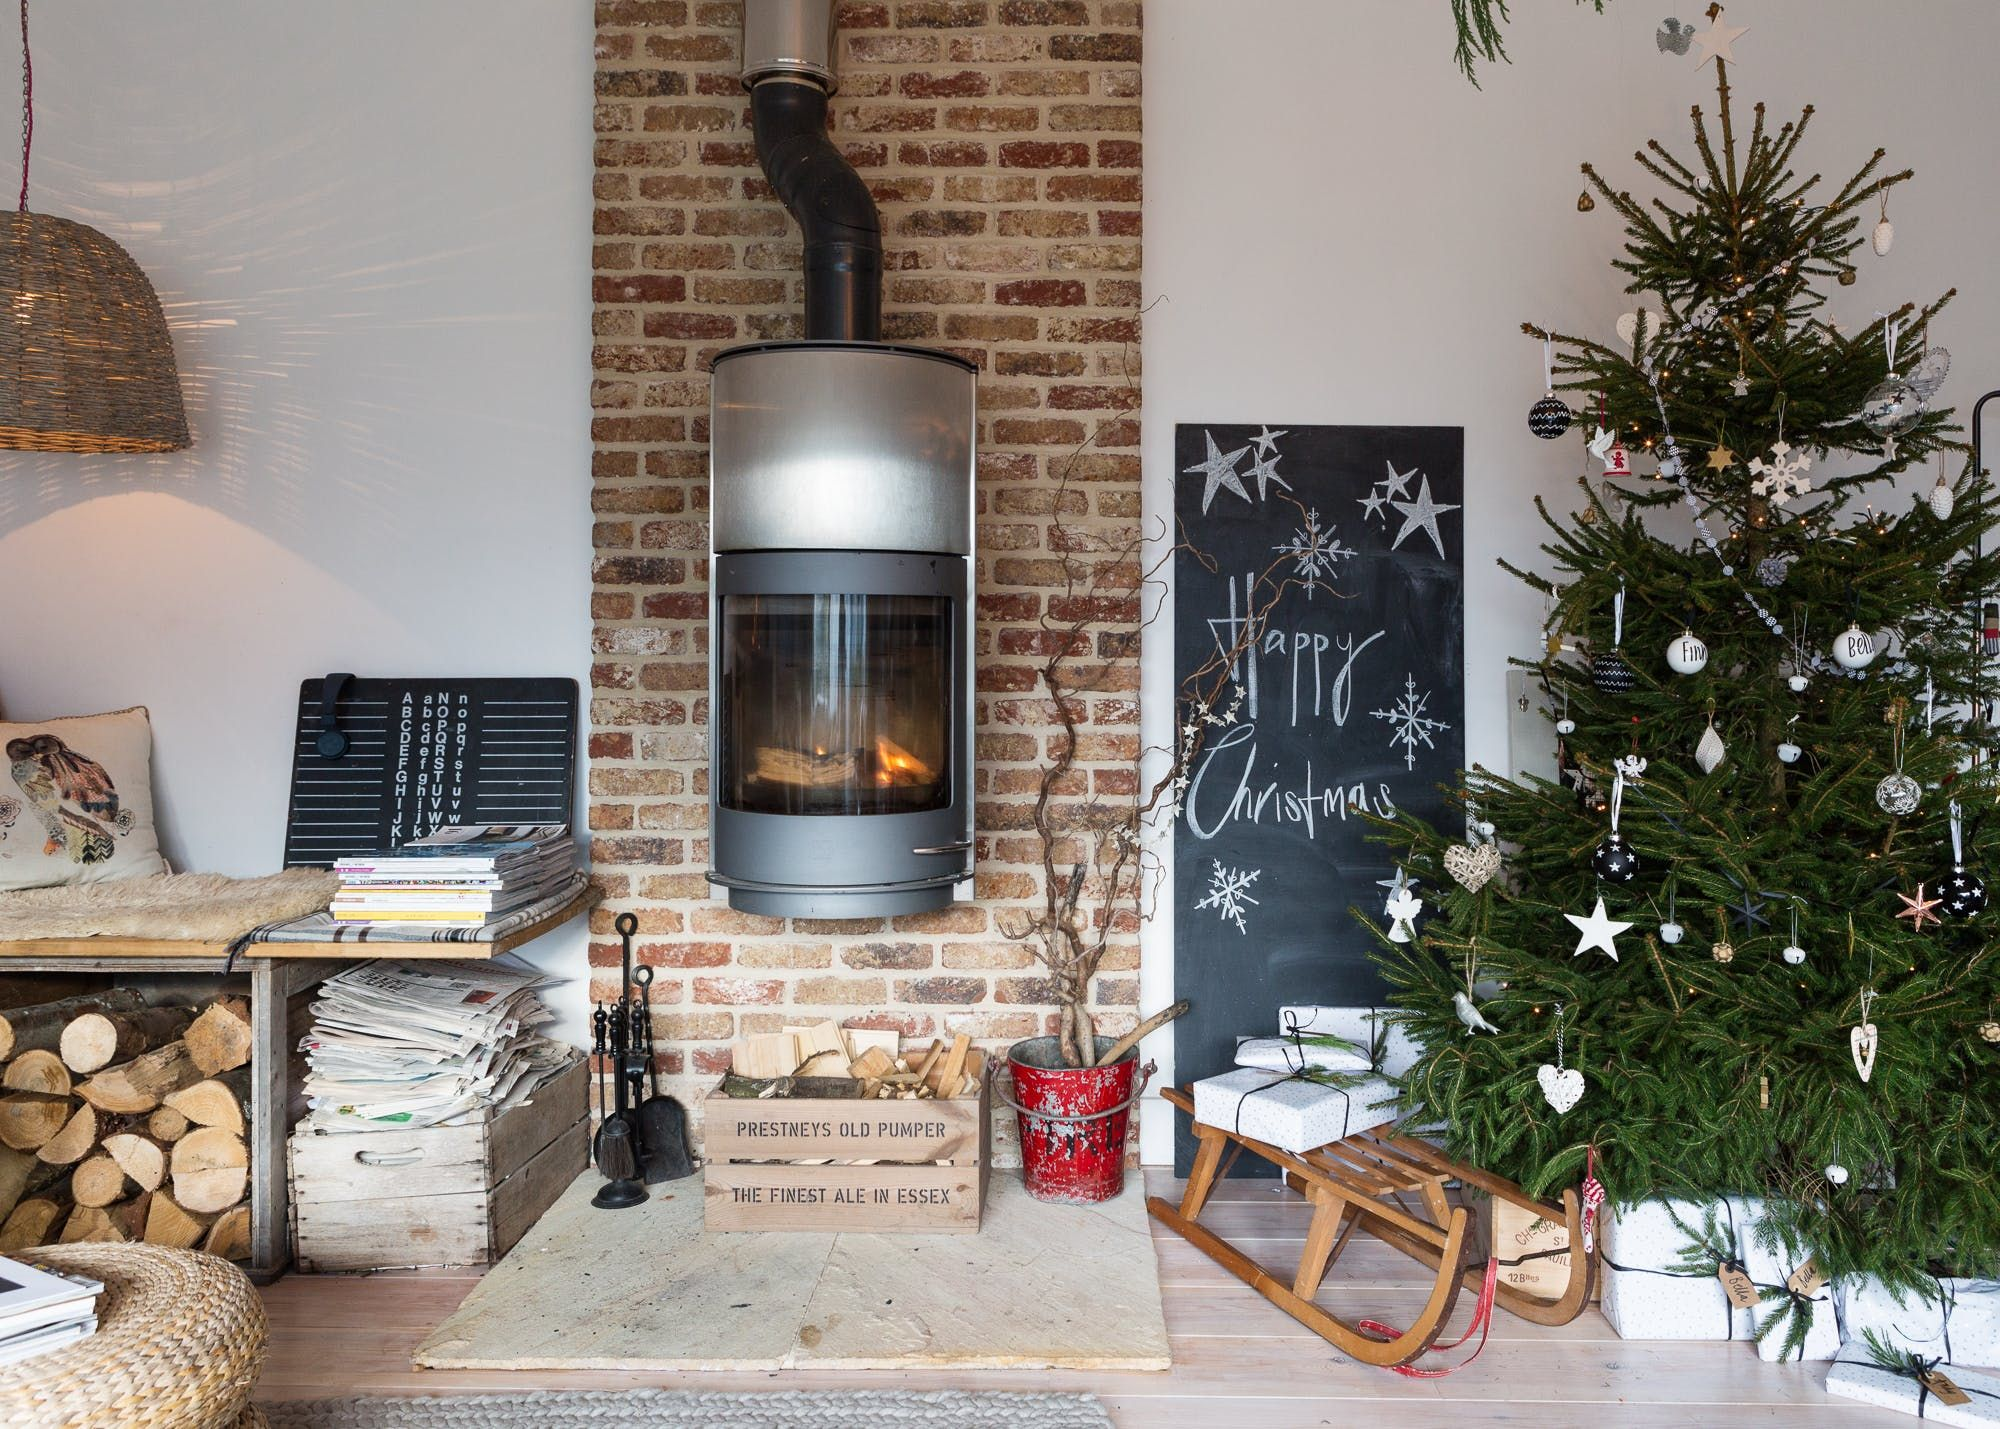 House Tour: Christmas in a Rustic Modern English Home